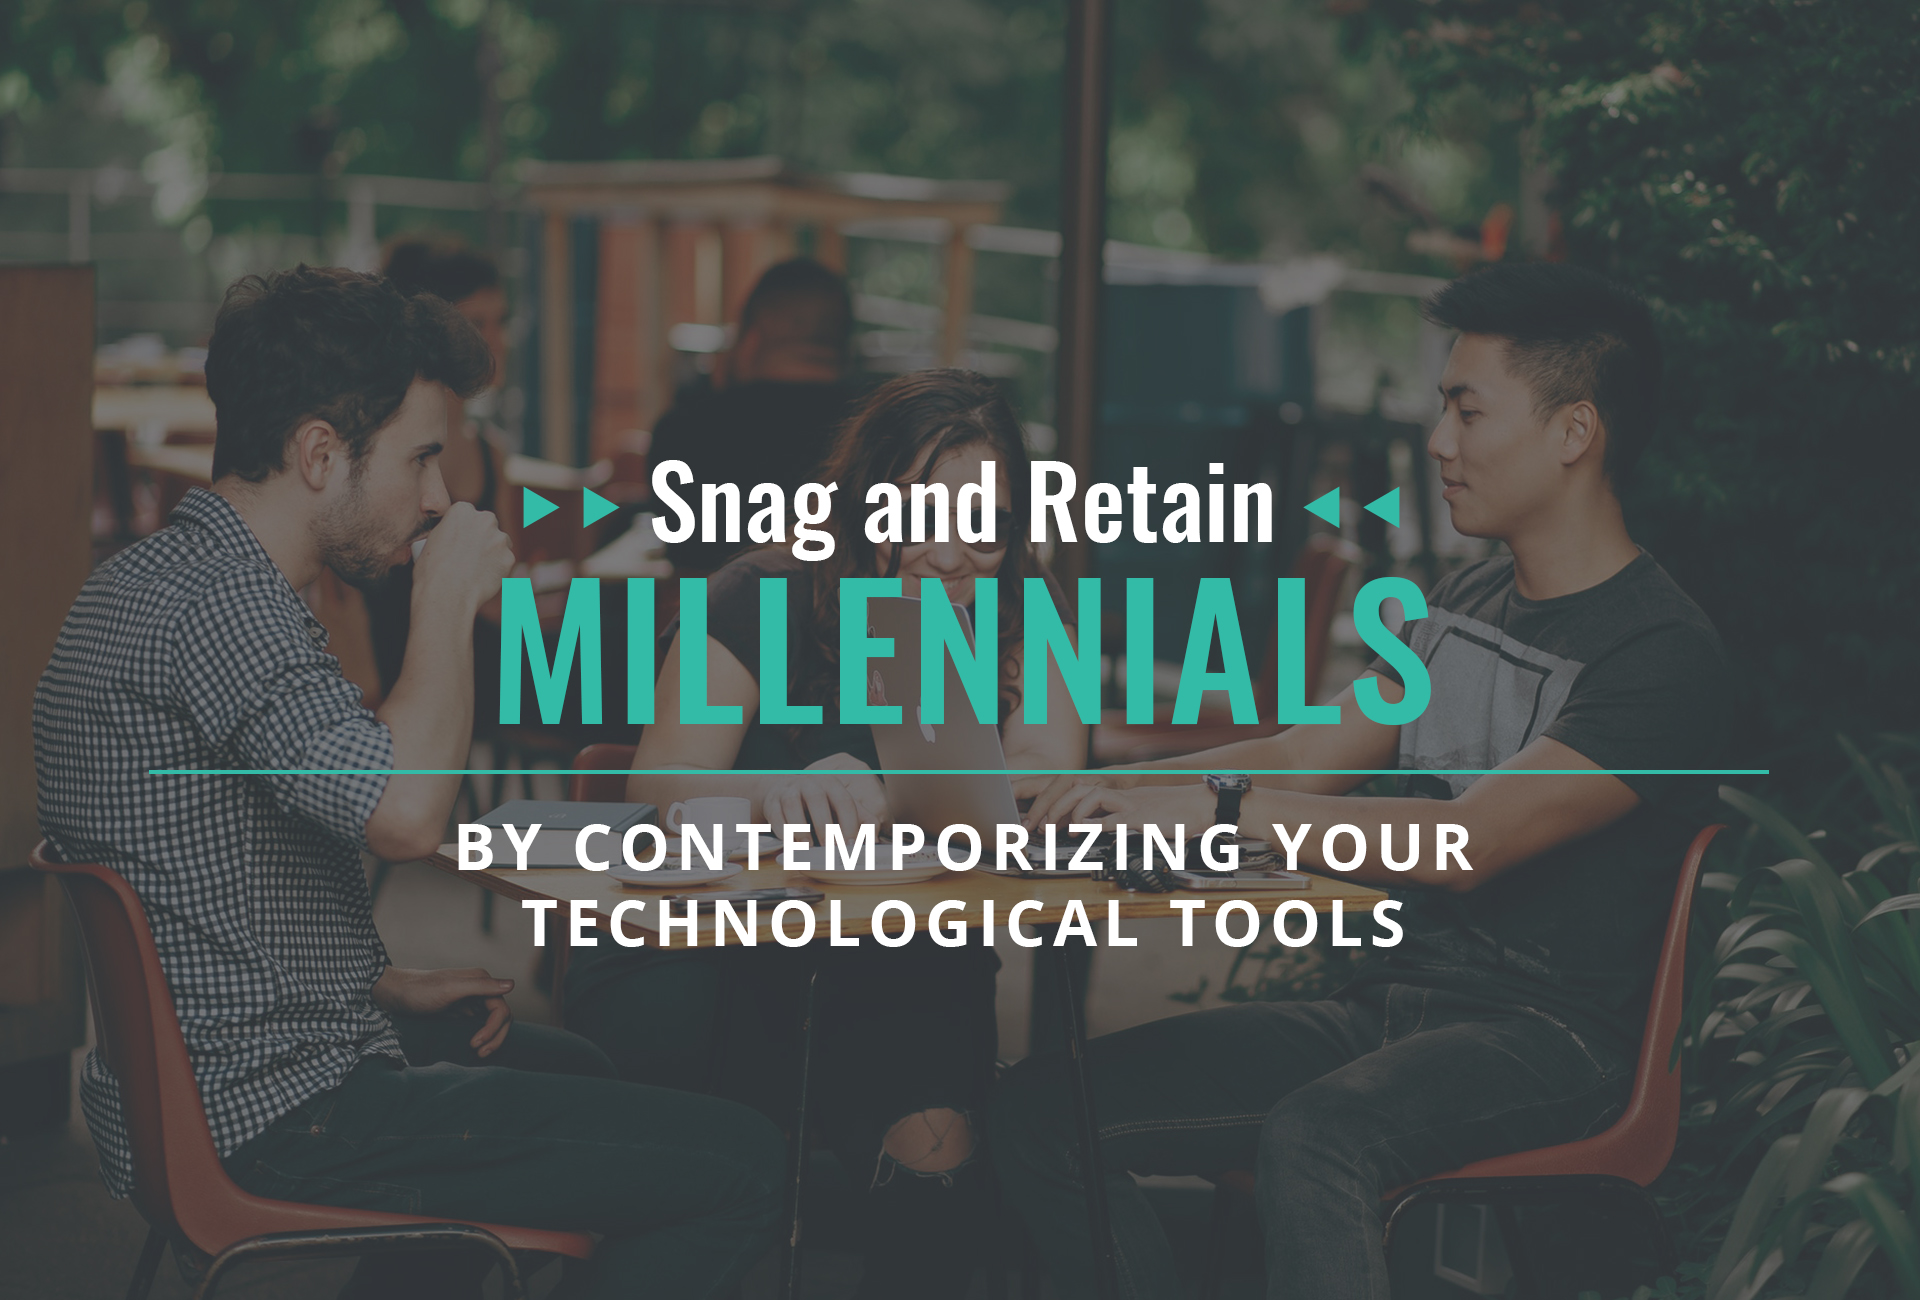 Snag and Retain Millennials by Contemporizing Your Technological Tools